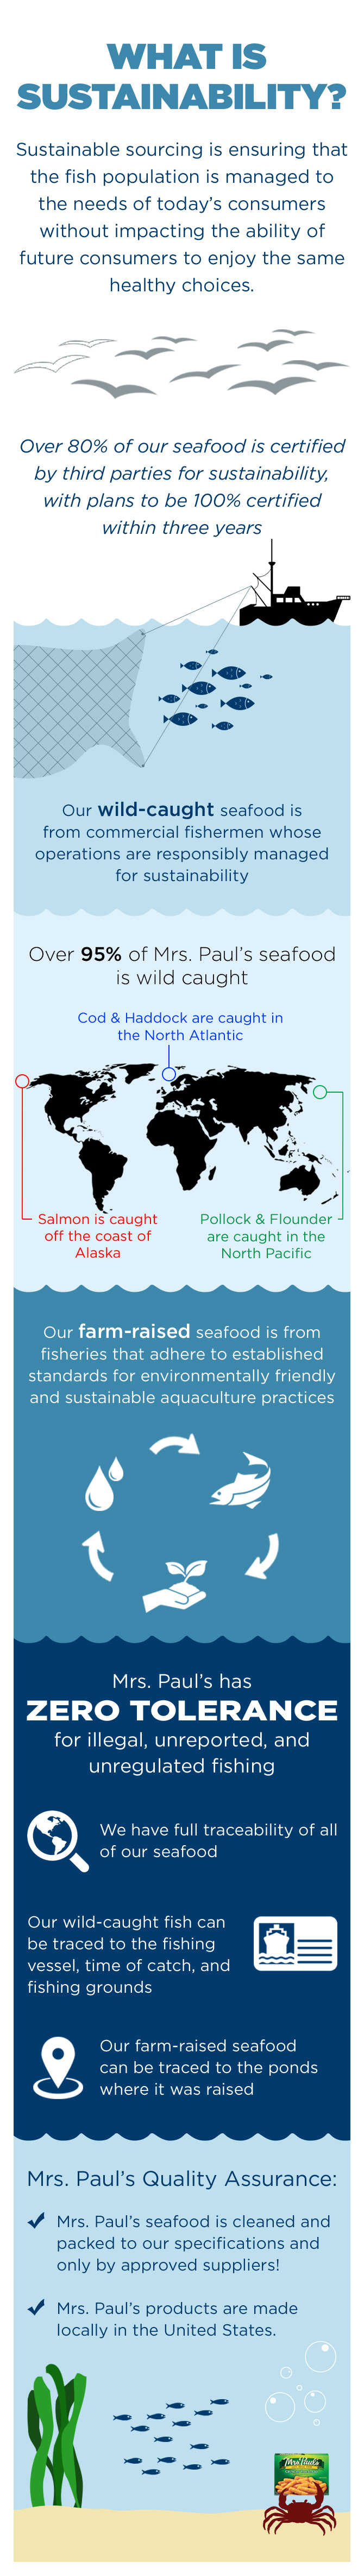 Mrs. Paul's is committed to sustainable sourcing to ensure that the fish population is managed to manage today's consumer's needs without impacting future consumer's ability to enjoy Mrs. Paul's products.  Mrs. Paul's has zero tolerance for illegal, unreported, and unregulated fishing.  Mrs. Paul's assures quality by only using approved suppliers and producing locally in the United States.